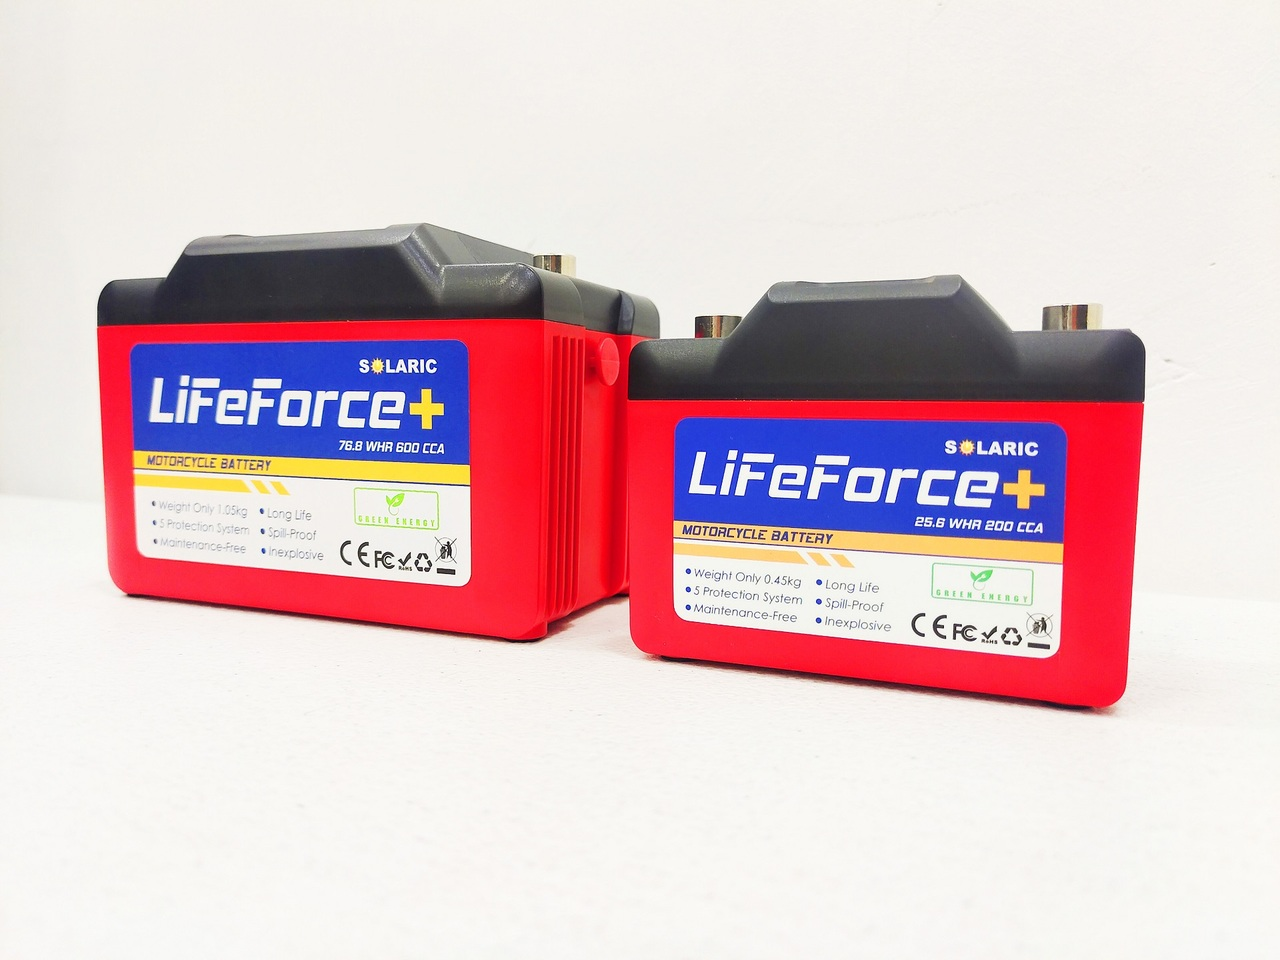 The Lithium Battery Technology